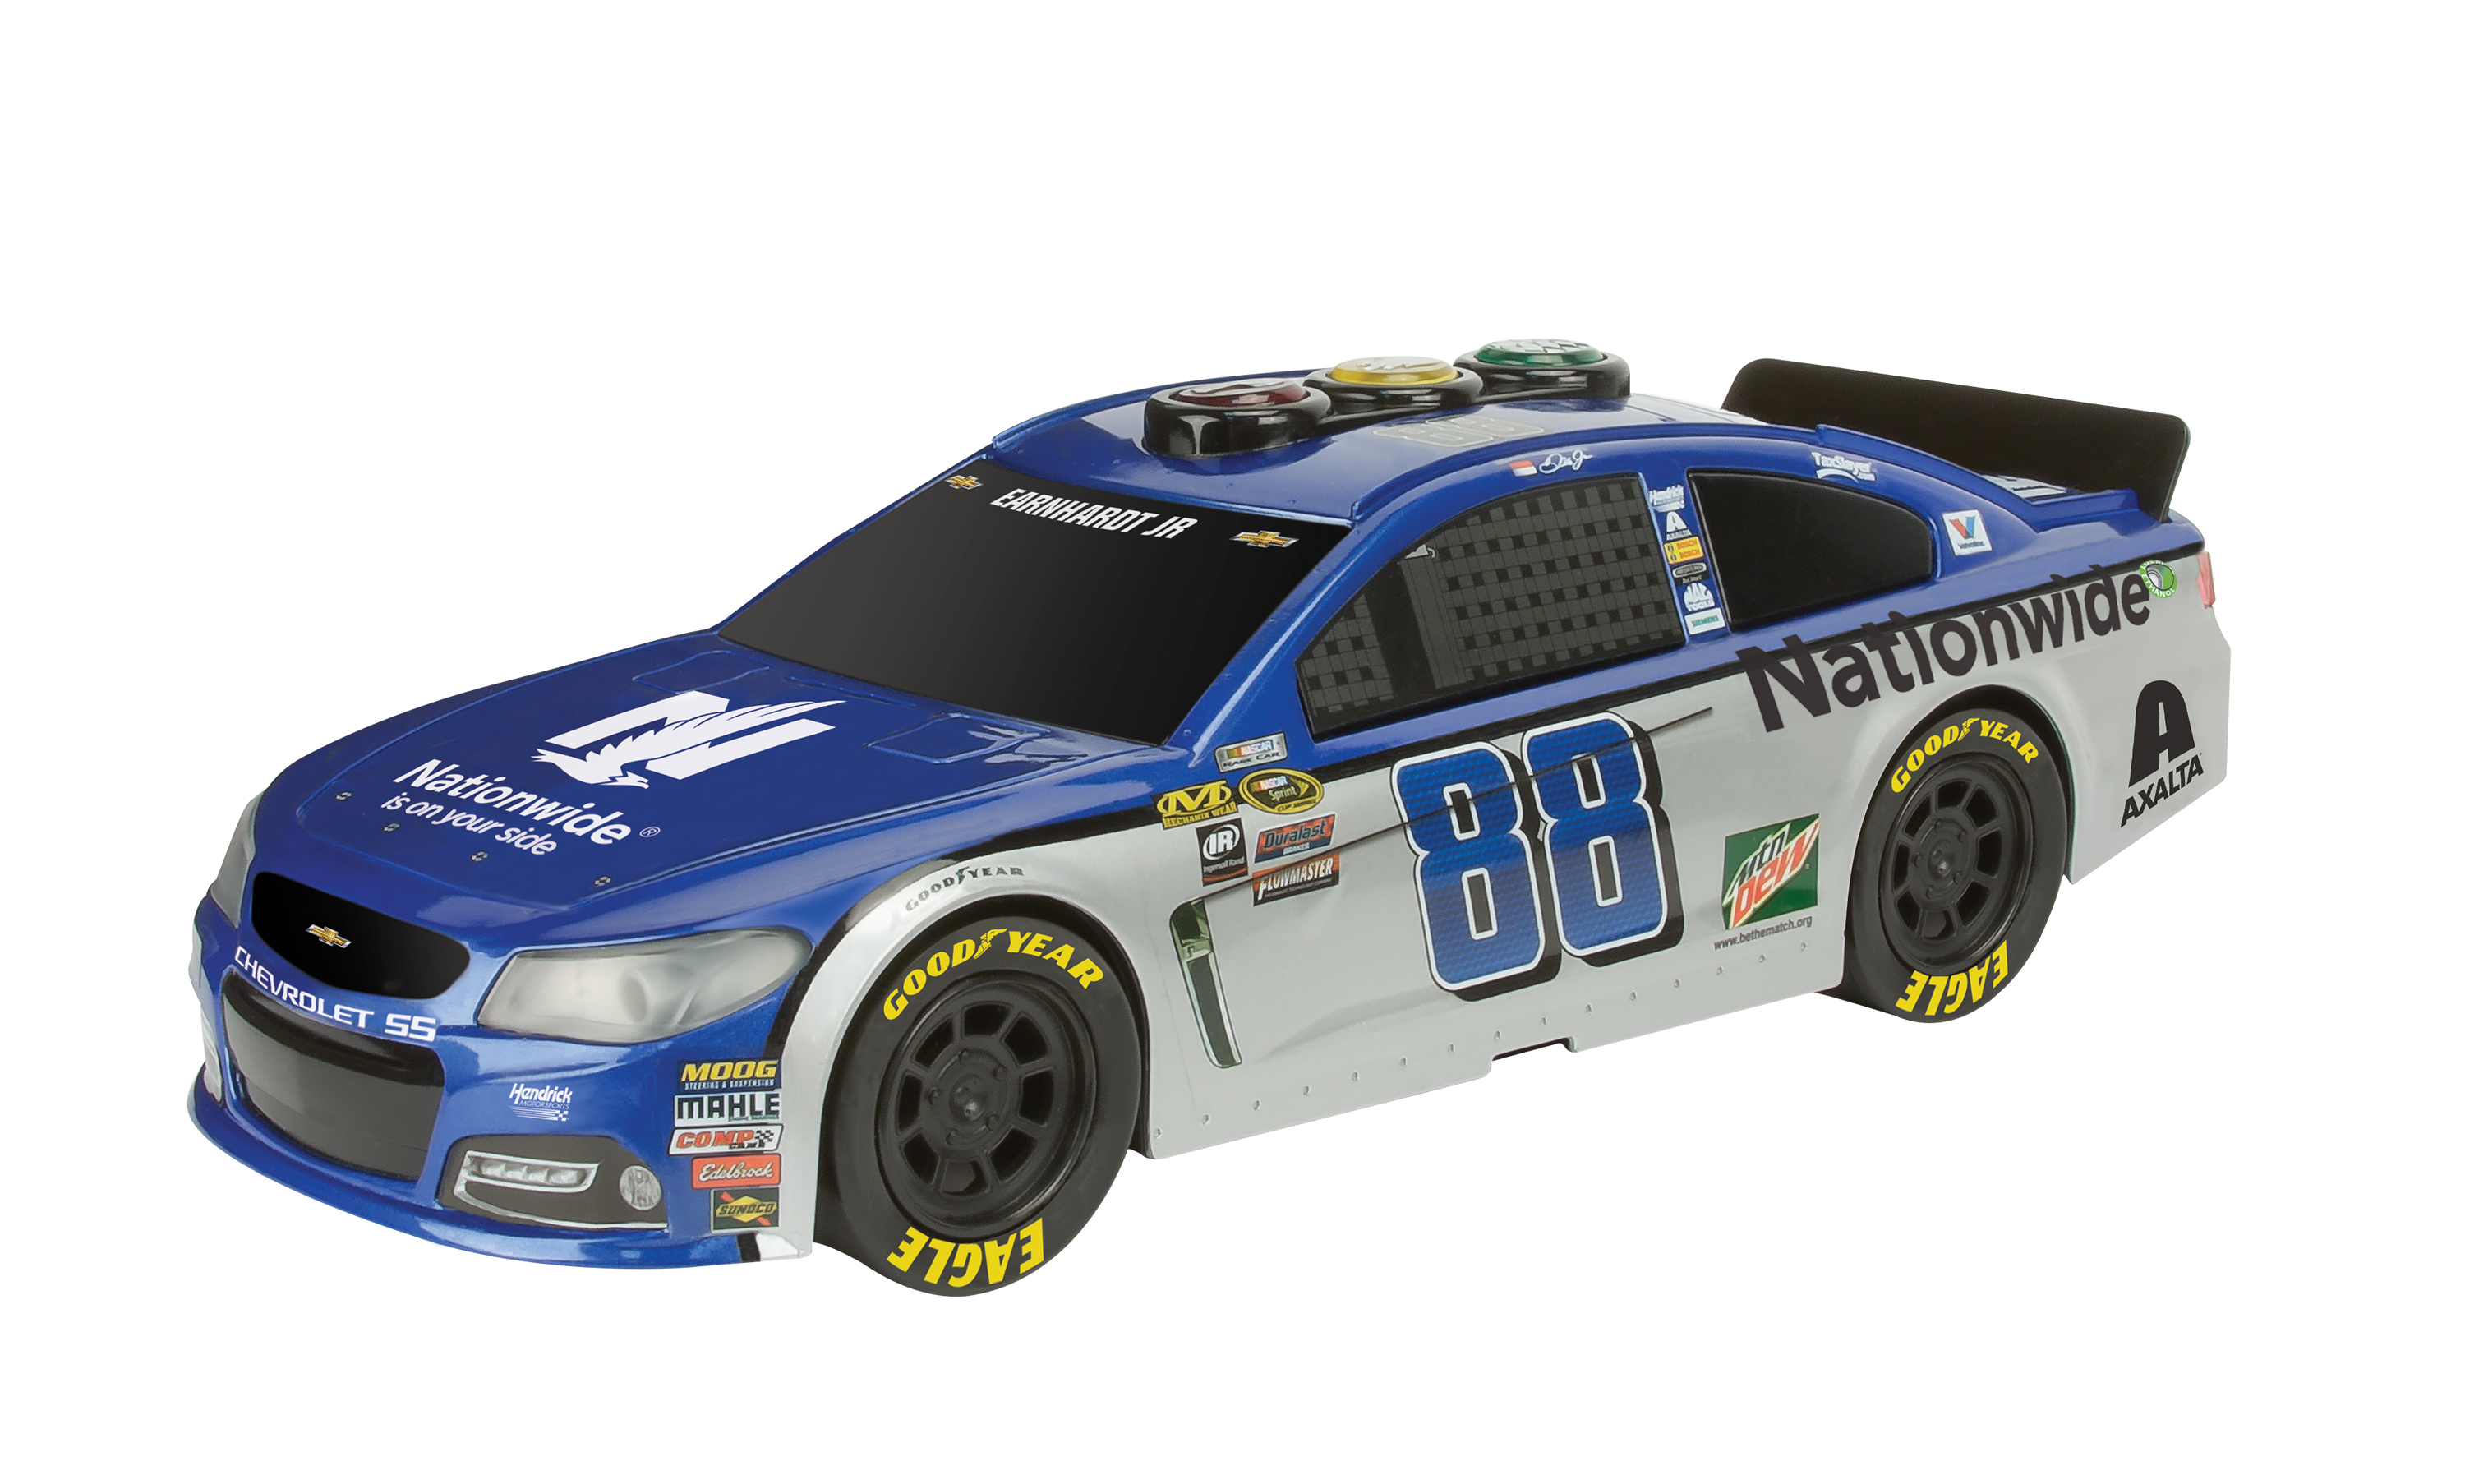 Road Rippers Come Back Racer Dale Earnhardt Jr. Nationwide Chevrolet by Toy State International Limited